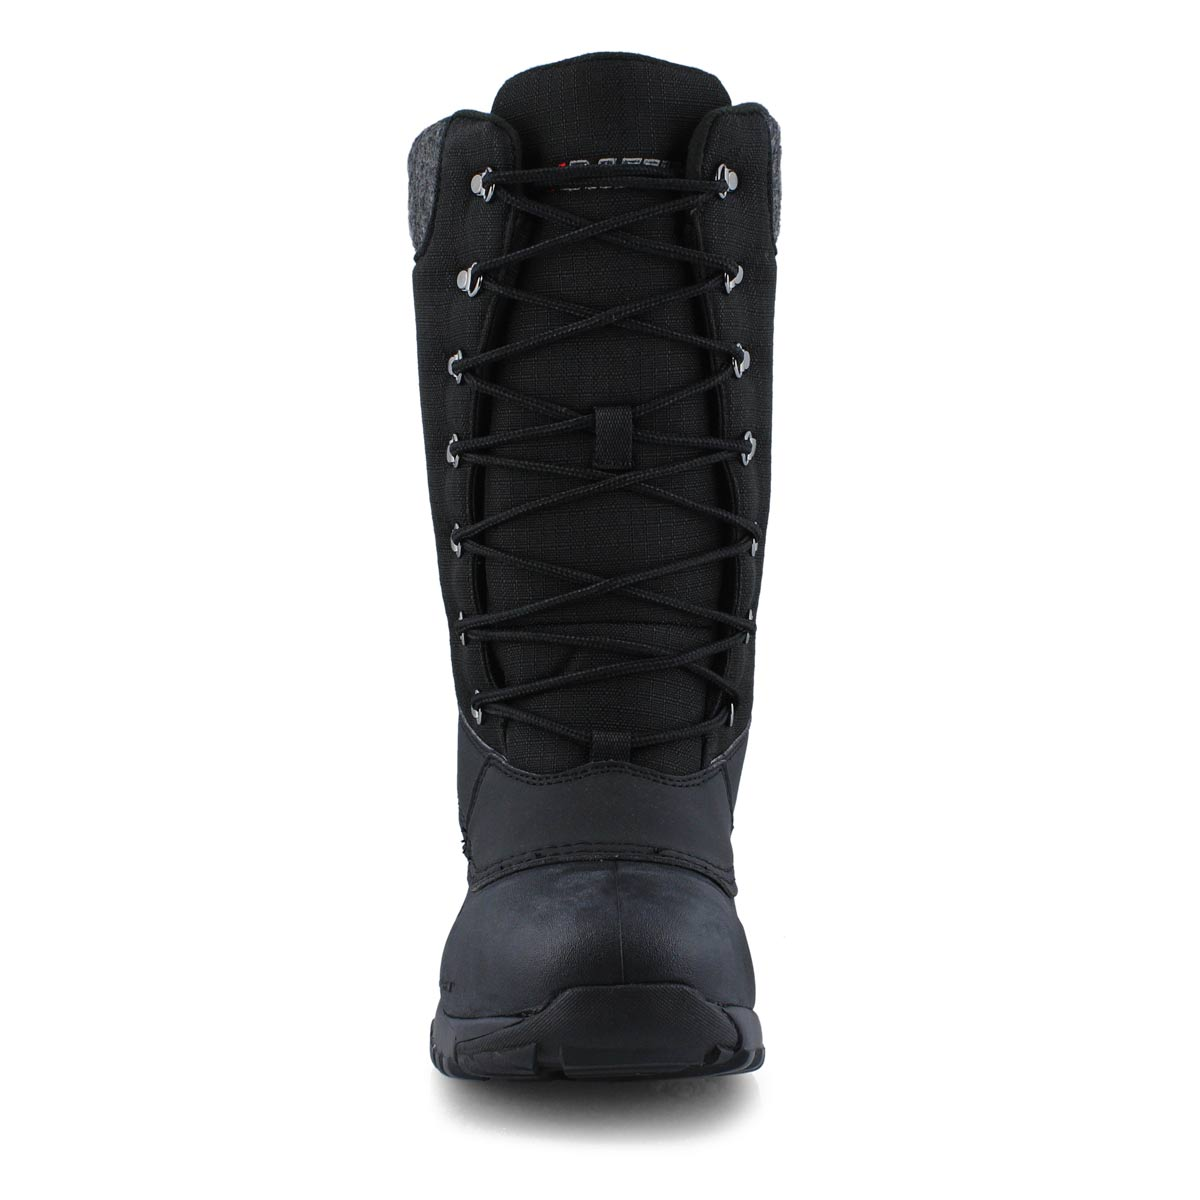 Lds Jess black lace up wtpf winter boot